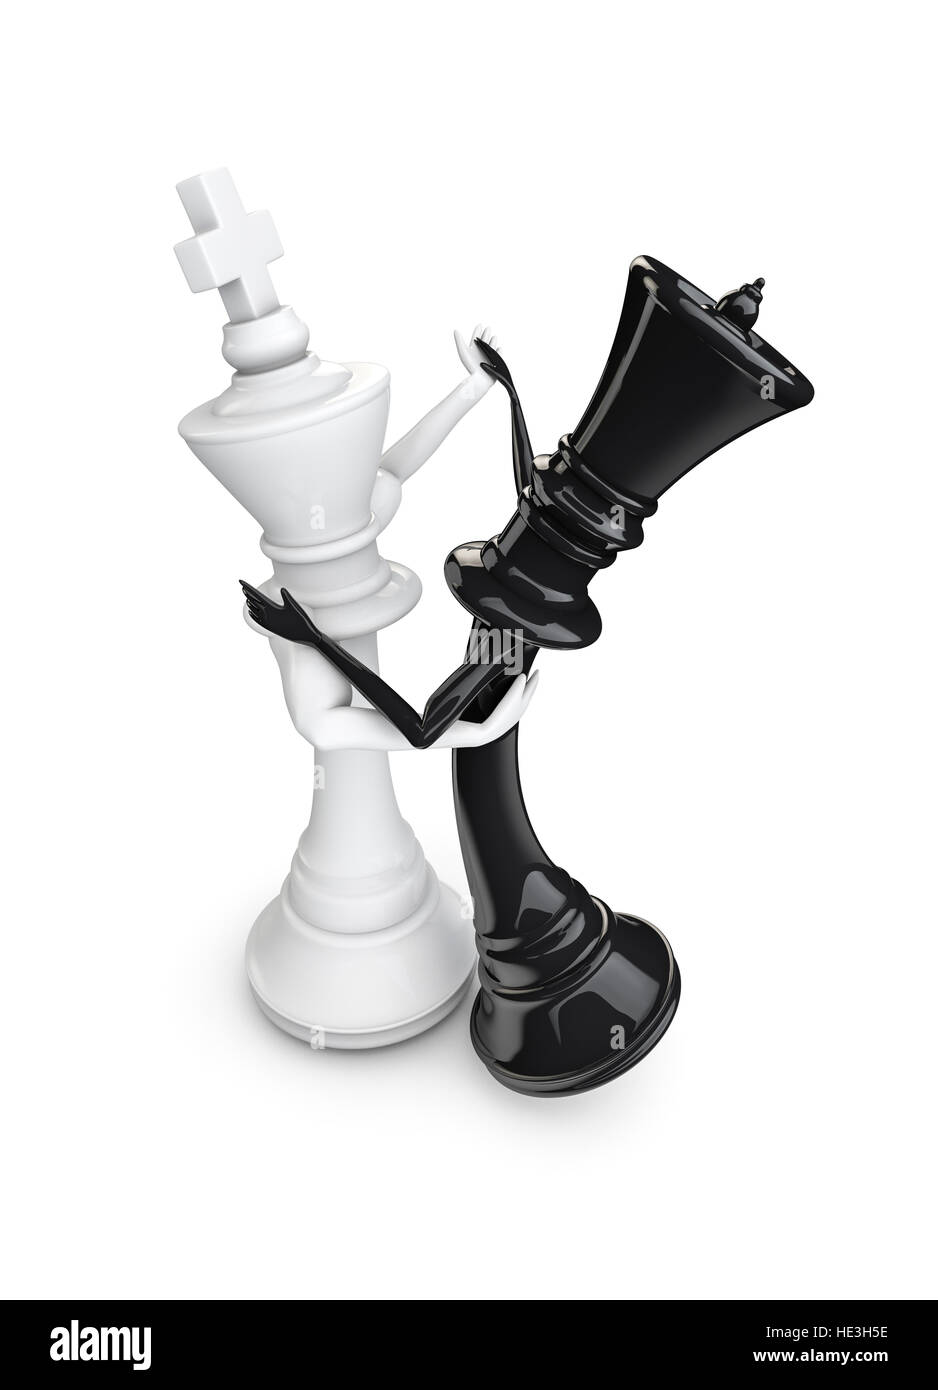 Chess Piece Dancers 3d Illustration Of White Chess King And Black